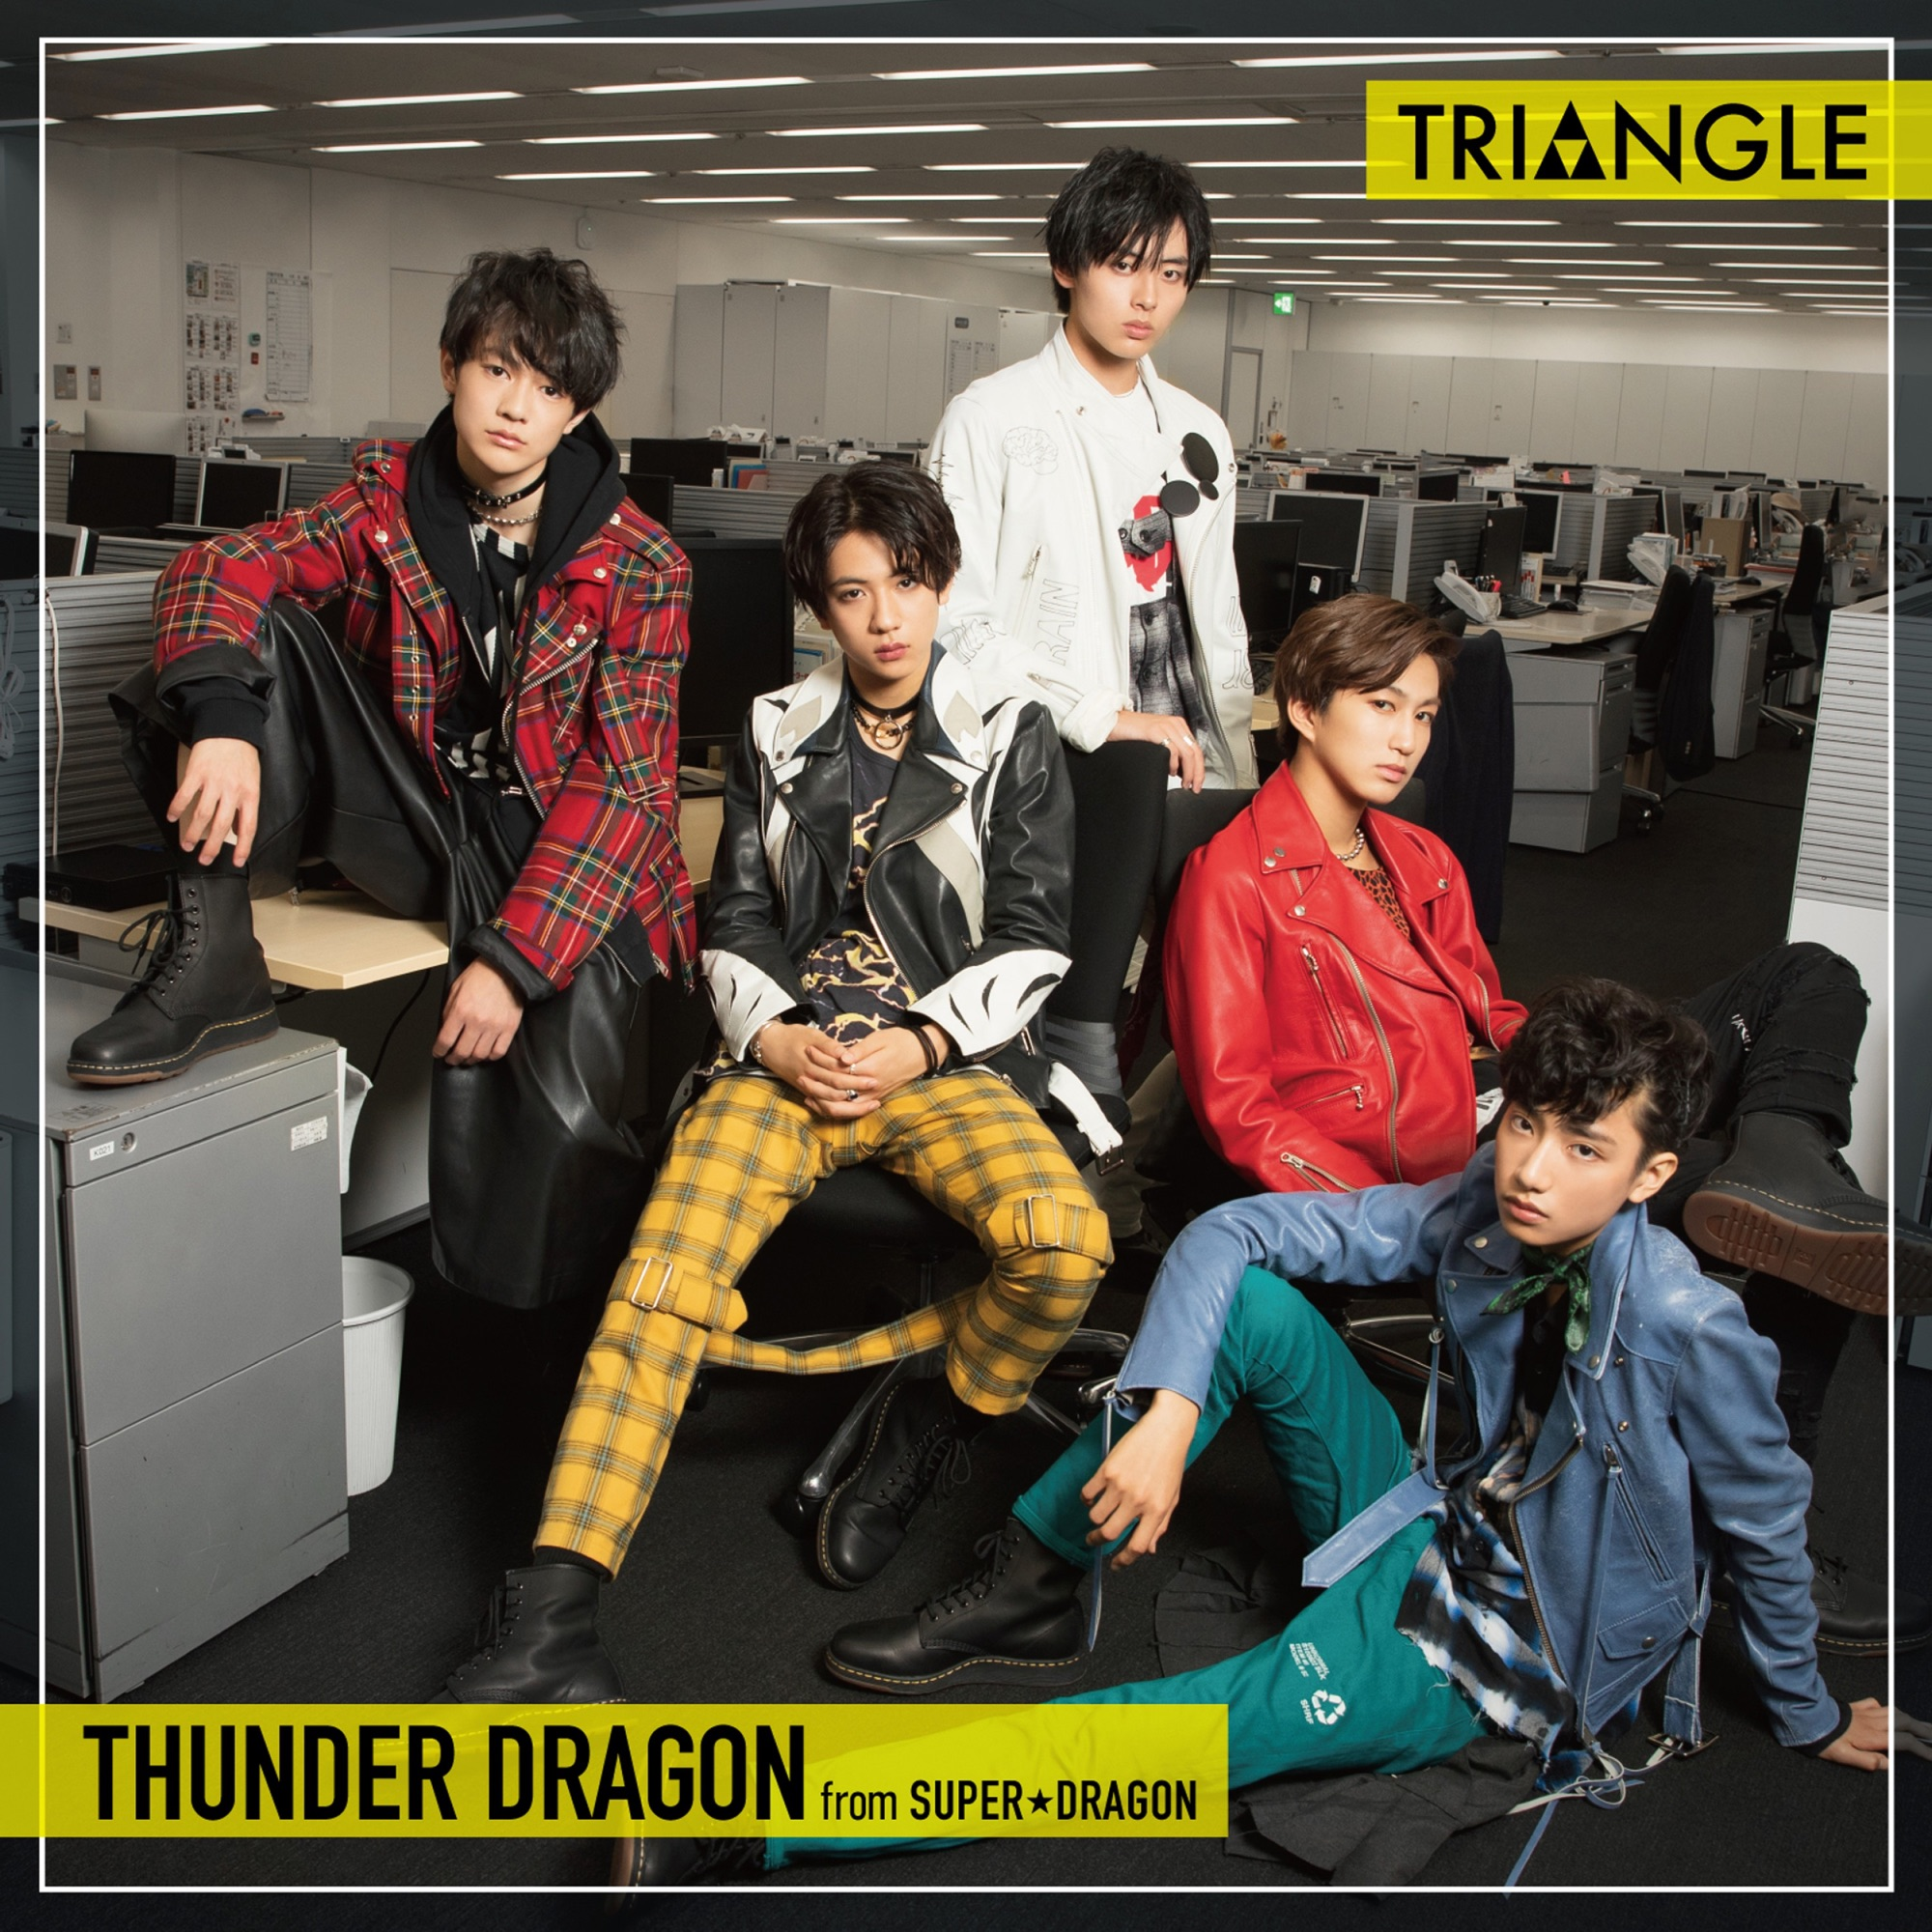 THUNDER DRAGON from SUPER DRAGON - Triangle